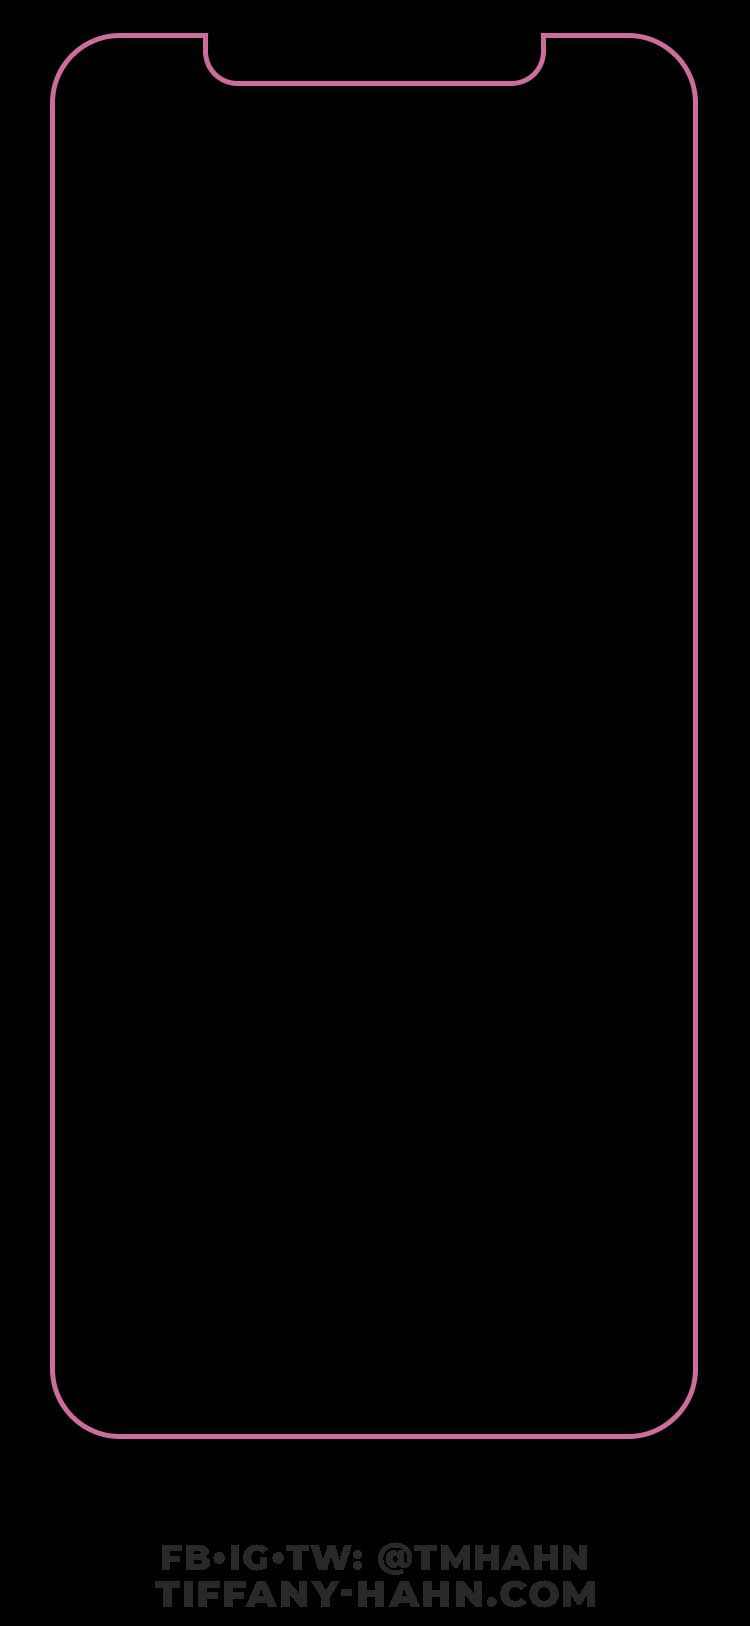 Iphone Xs Max Wallpaper Pink Black Outline Home Screen Black Wallpaper Iphone Dark Wallpaper Iphone Black Wallpaper